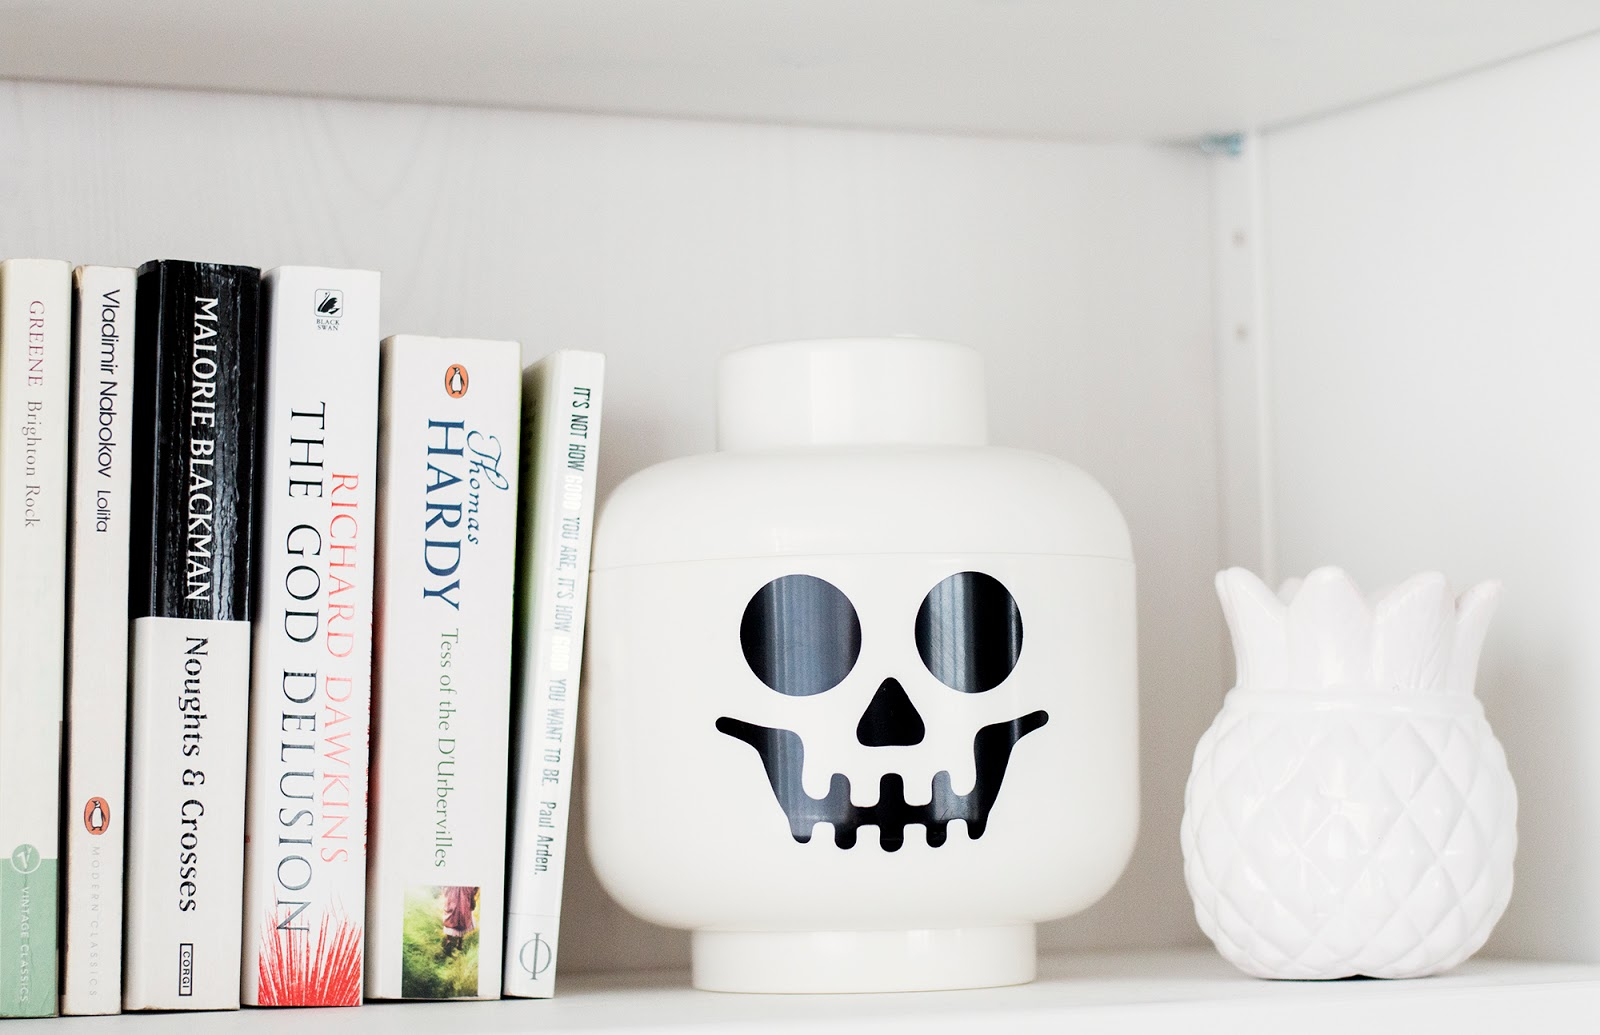 Lego Head, storage, bookshelves, home, homeware, interiors